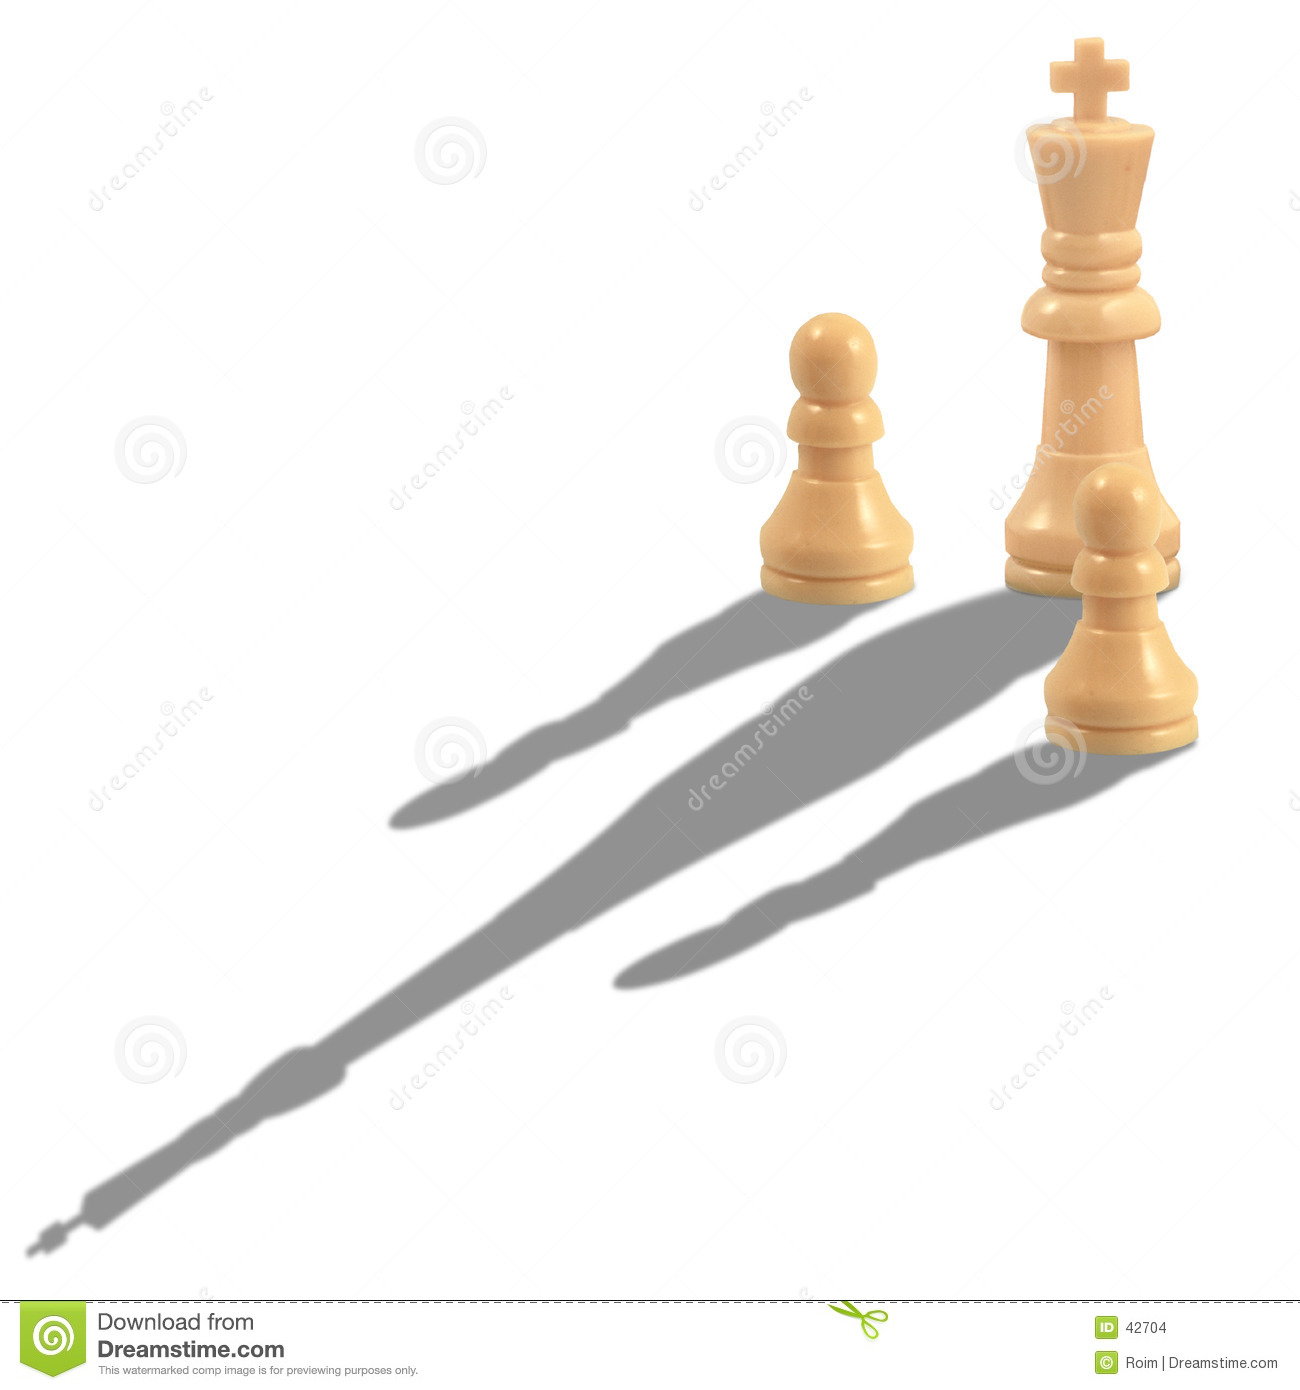 King and Pawn chess pieces